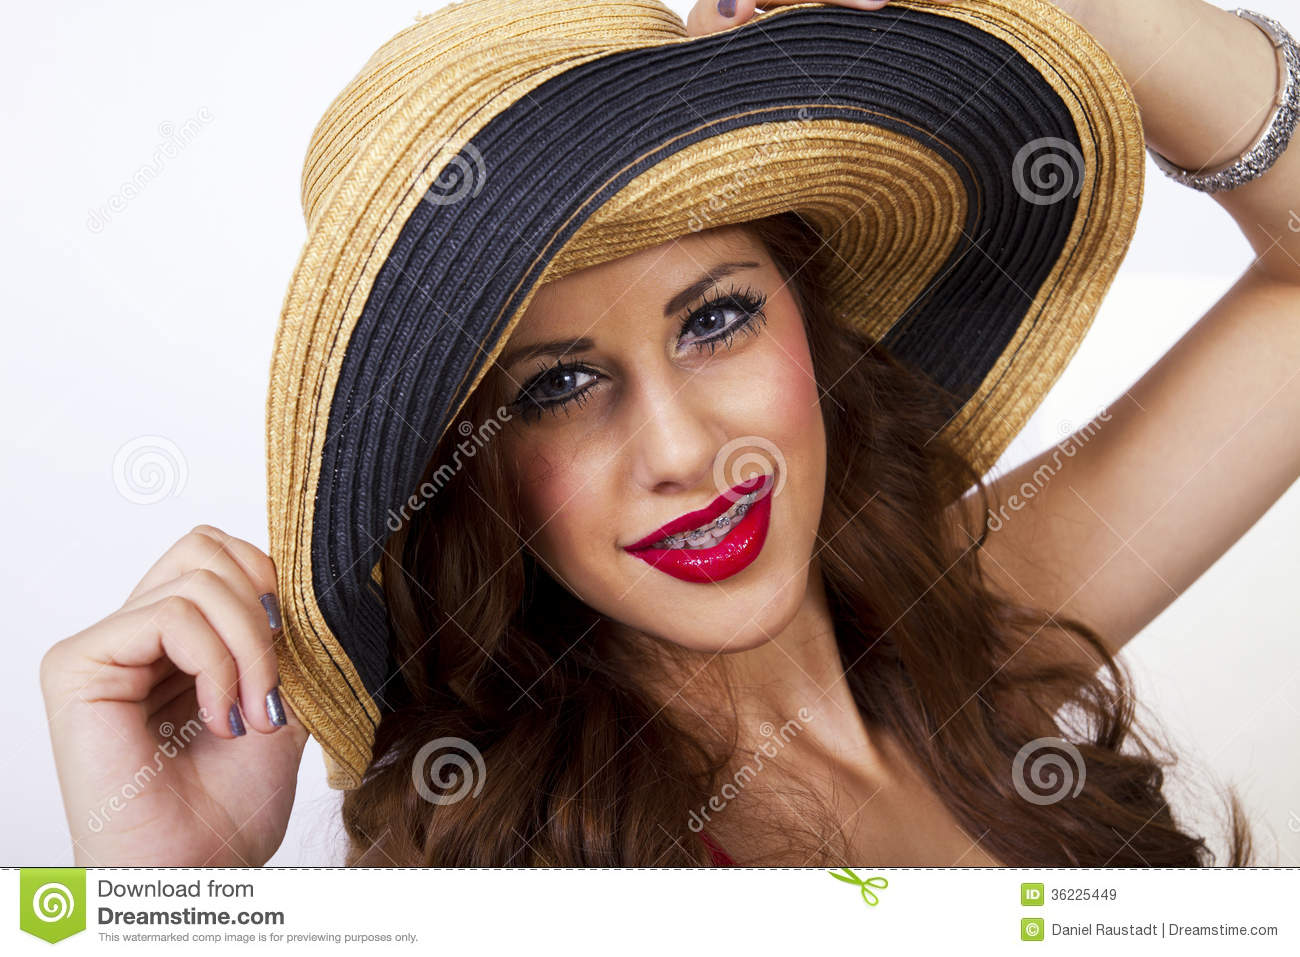 ... young woman wearing straw summer sun hat. She has braces on her teeth